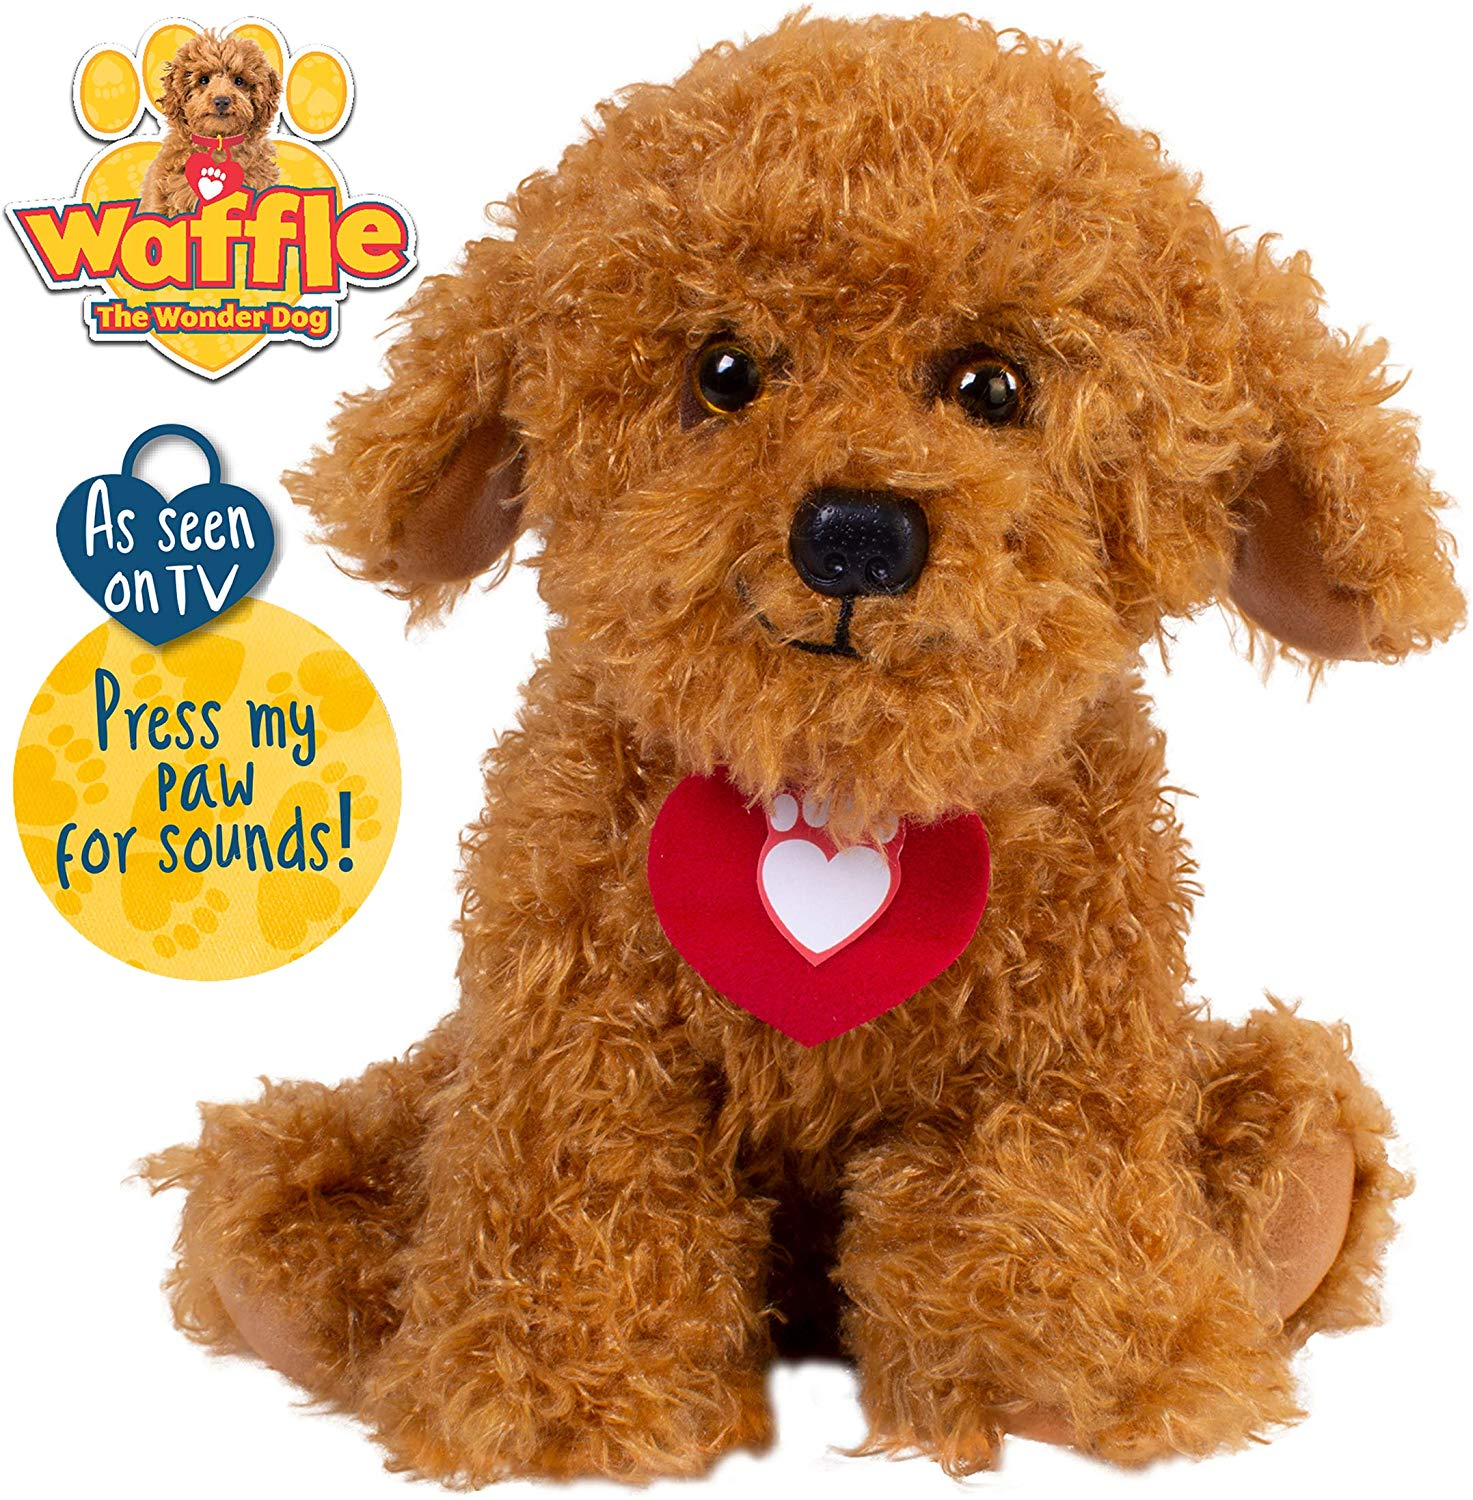 Waffle the Wonder Dog Soft Toy with Sounds for Prime £14.73